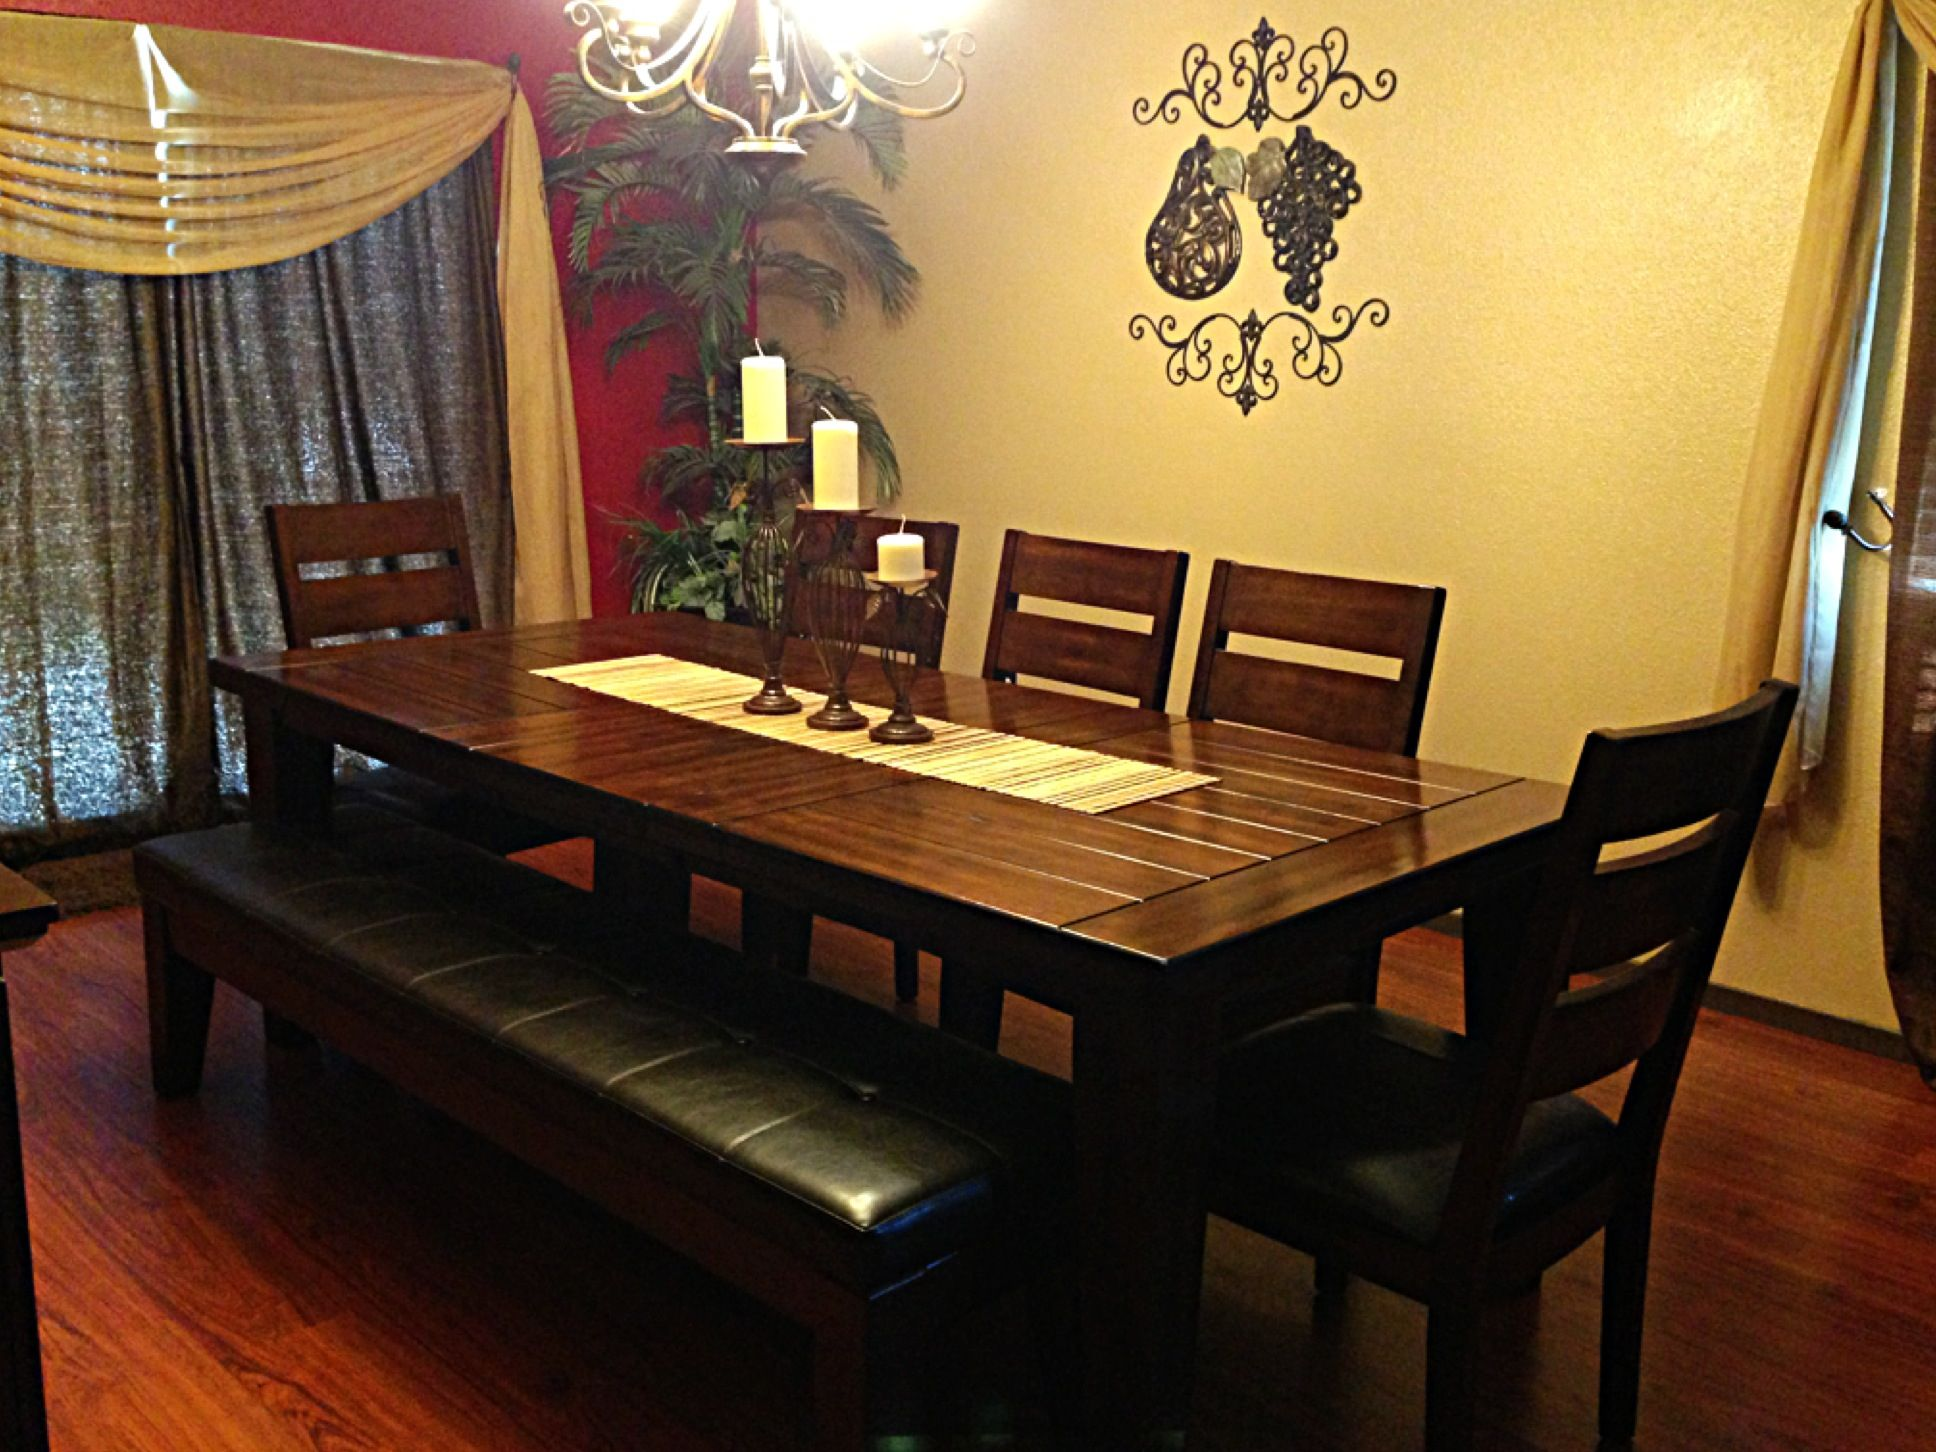 ashley furniture dining table with bench candle holders in the middle and iron decor with brown